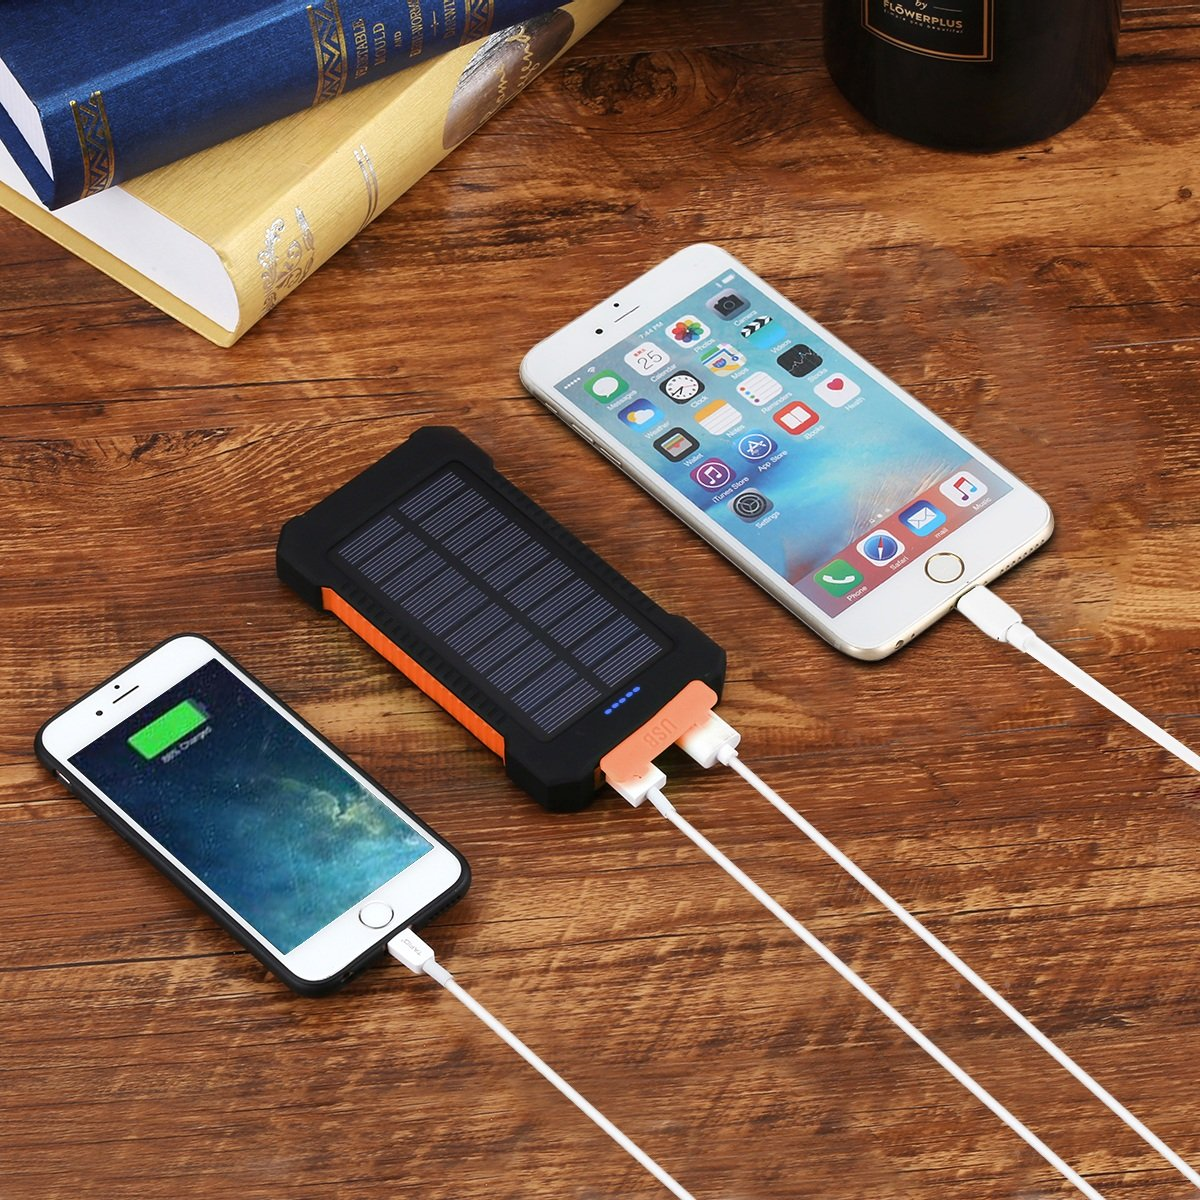 FLOUREON 10,000mAh Solar charger Power Bank Portable Phone Charger for £4.20